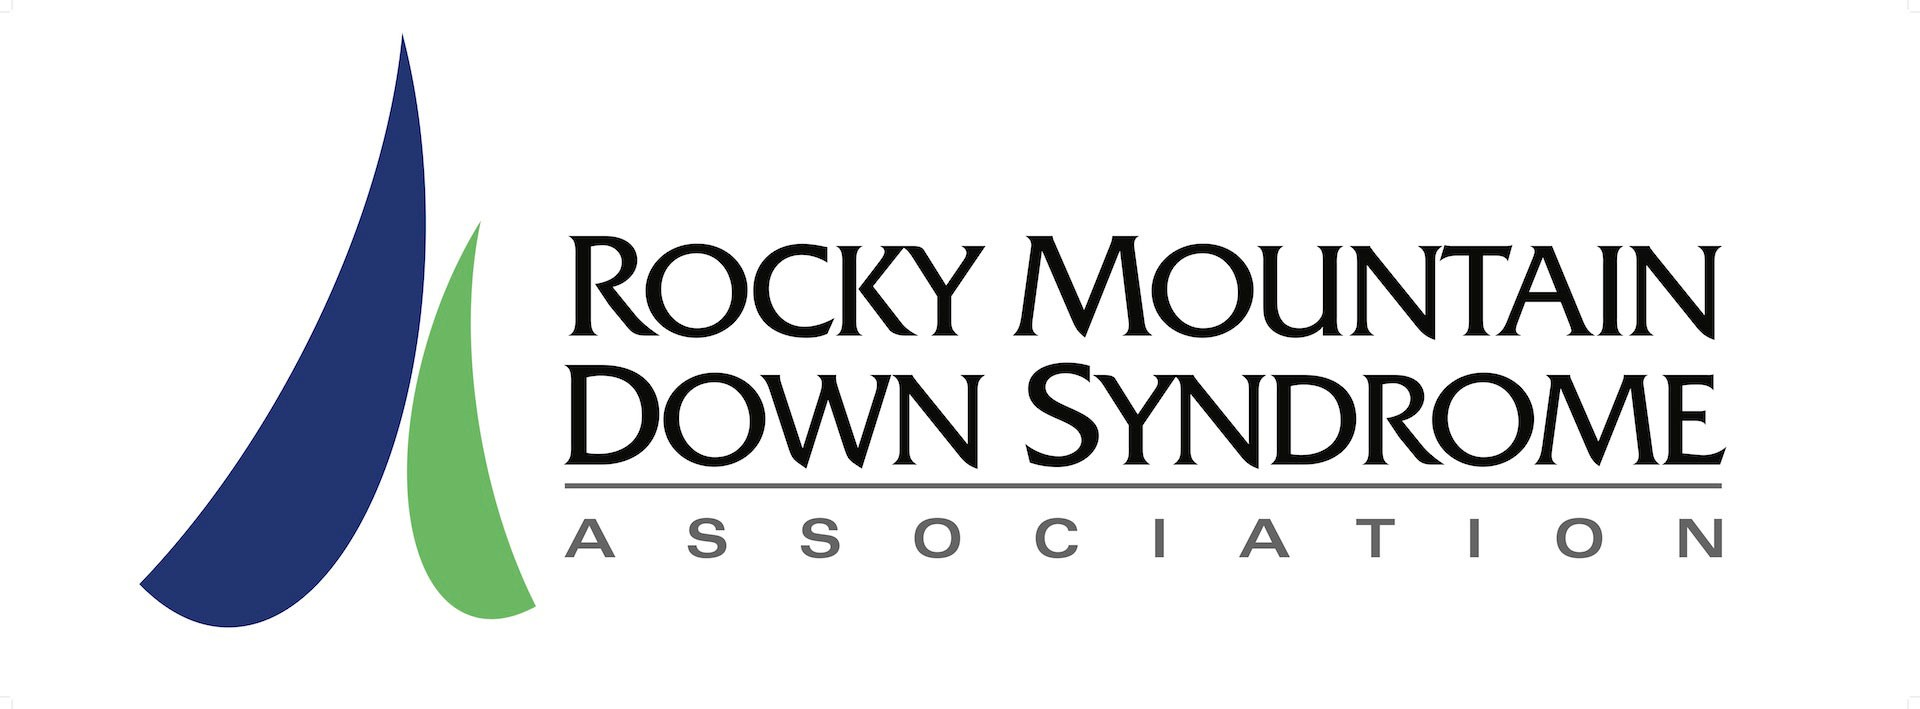 Rocky Mountain Down Syndrome Association